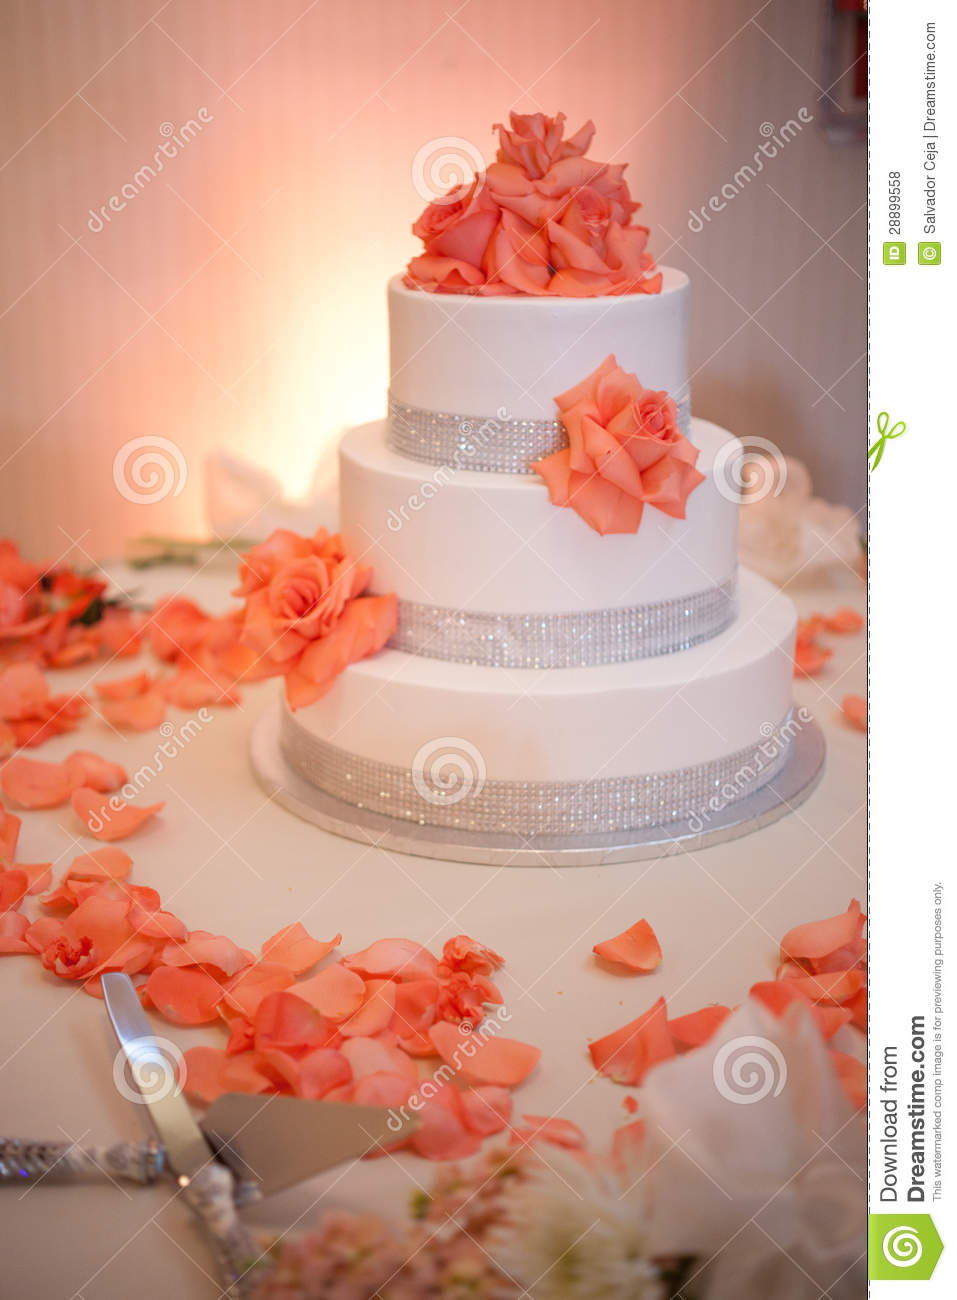 wedding cake with flowers on the side wedding cake with flowers stock photo image of cake 26884